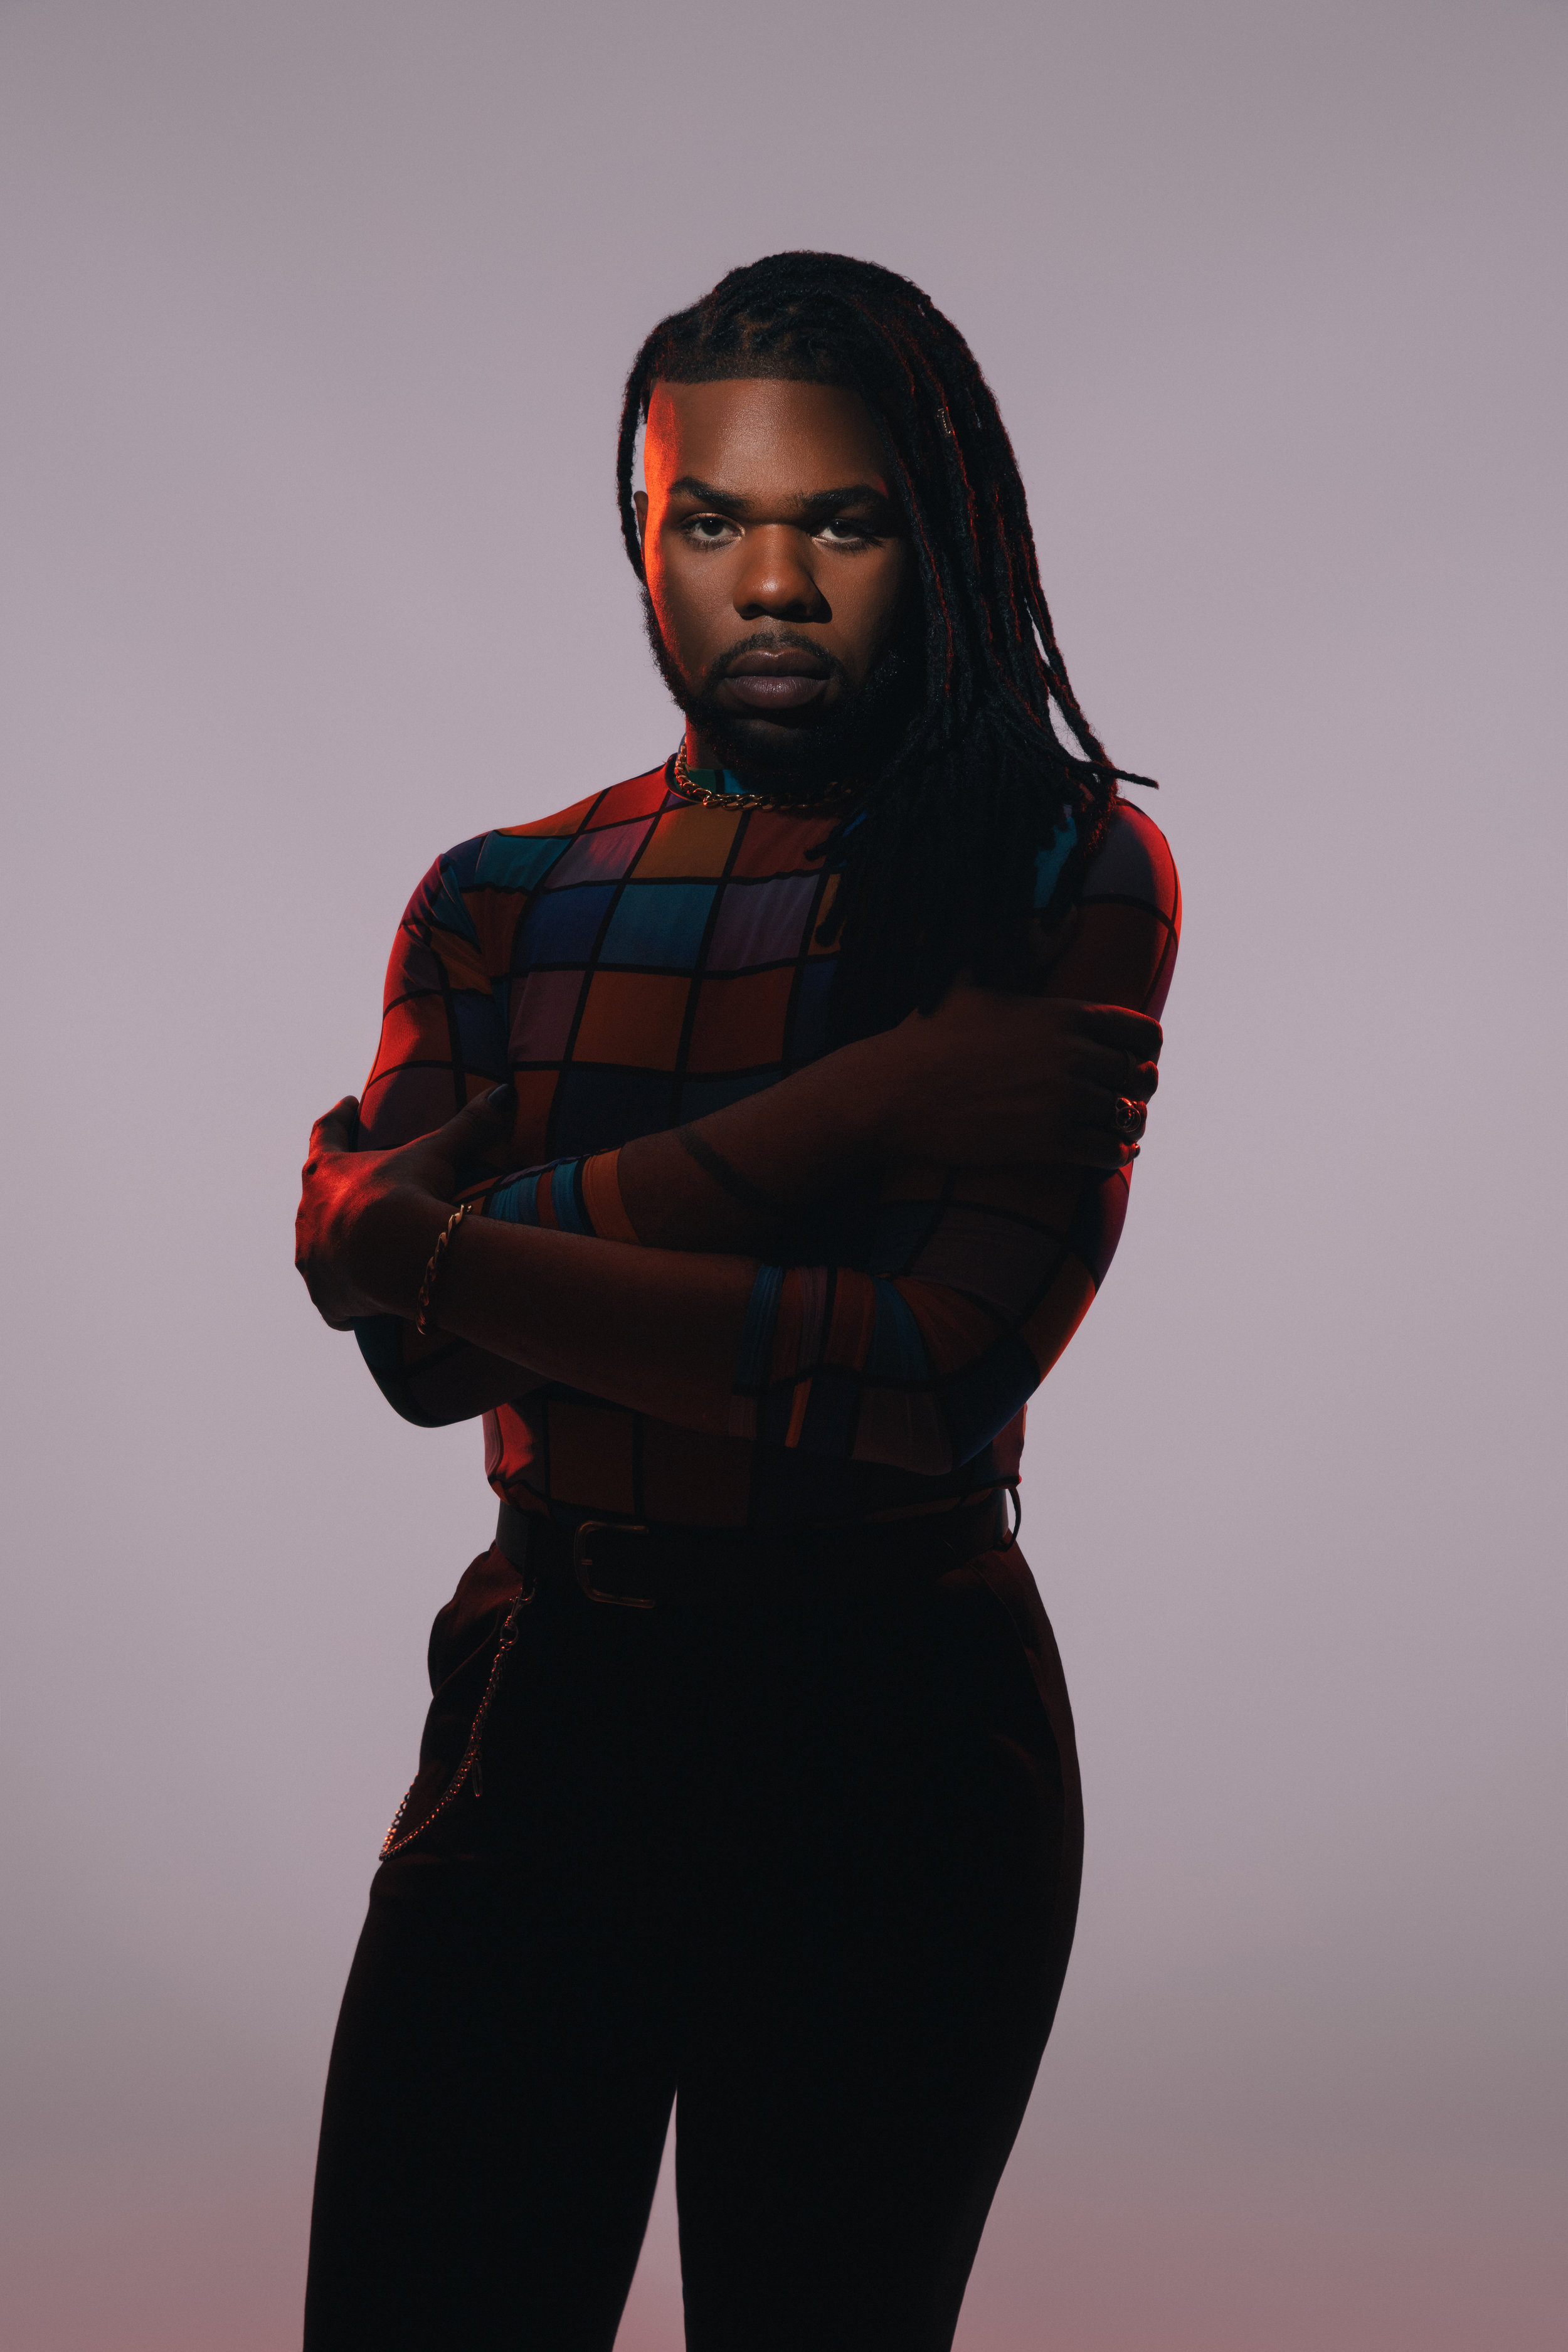 MNEK to Headline UK Black Pride 2019 - The singer and Grammy-winning songwriter and record producer, MNEK, will headline UK Black Pride's 2019 pride celebration in Haggerston Park on Sunday 7 July.MNEK's writing and production credits include H.E.R., Jax Jones, Zara Larsson, Little Mix, Dua Lipa, The Saturdays, Clean Bandit, Julia Michaels, Craig David, Christina Aguilera, Years and Years, Madonna and Beyoncé.Joining MNEK on the day is Aaron Carty's Beyoncé Experience, Toya Delazey and N'Chyz.